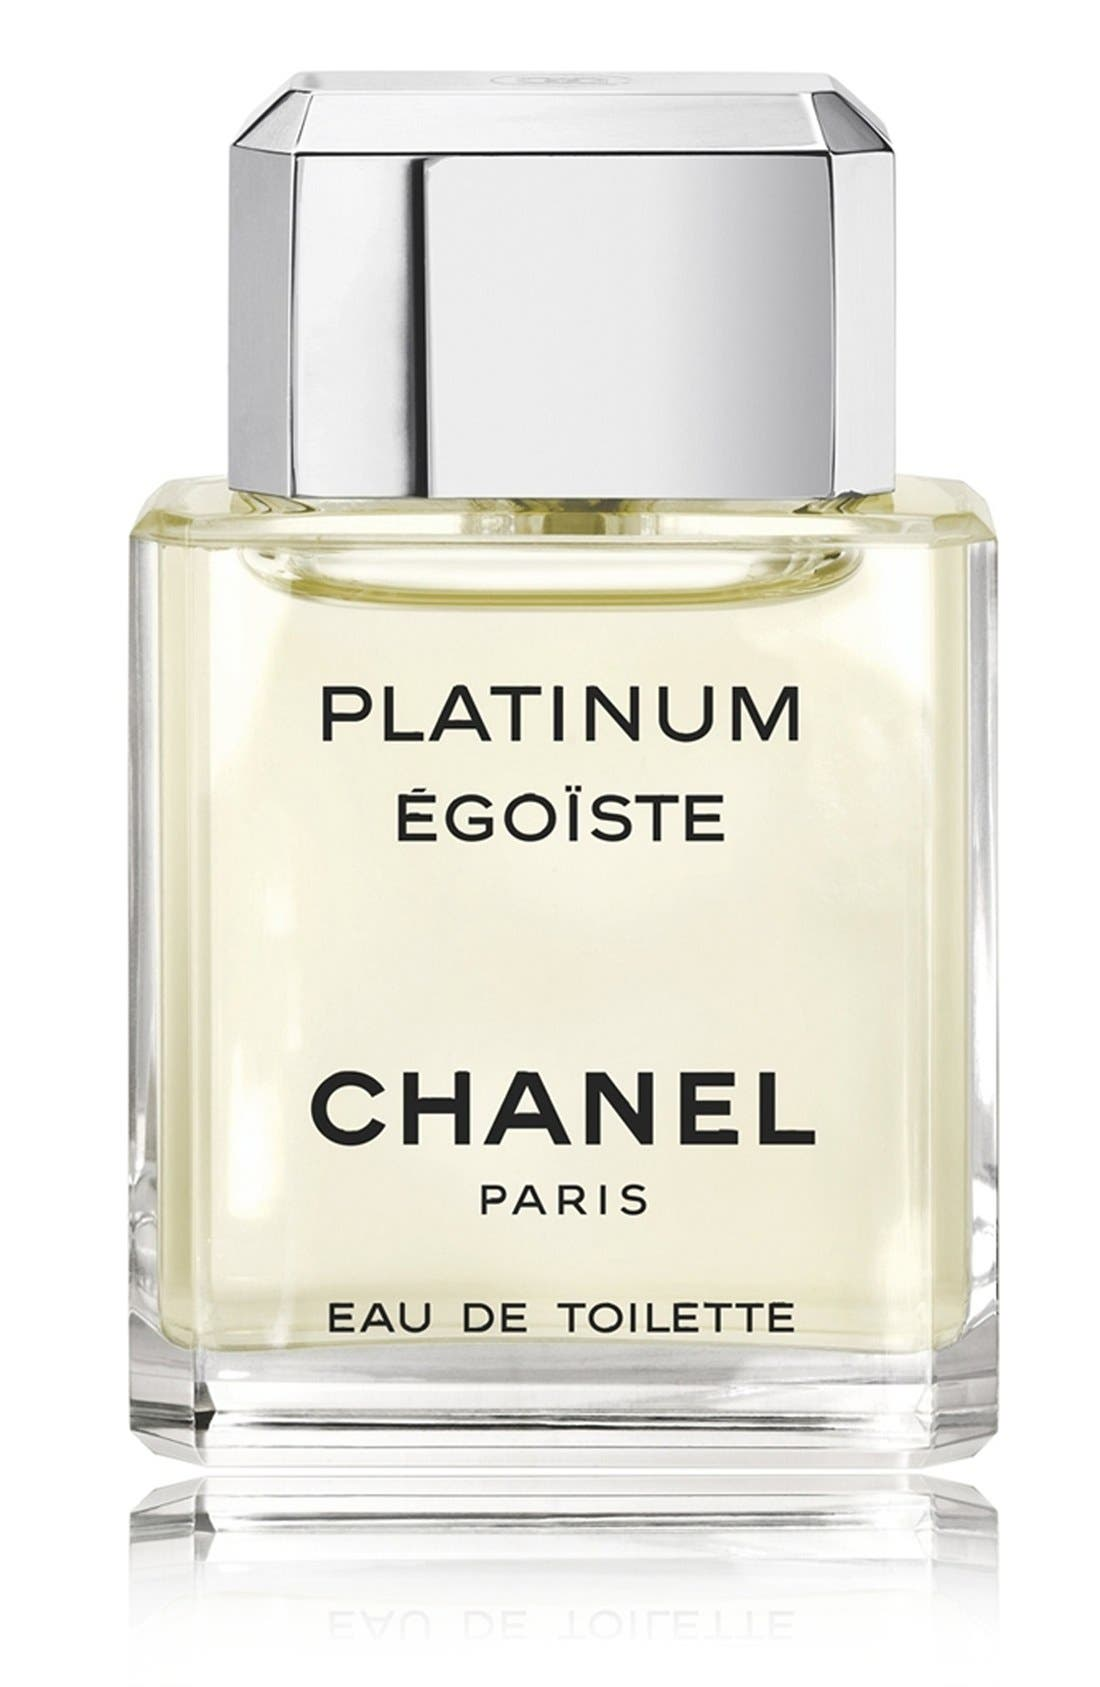 CHANEL PLATINUM ÉGOÏSTE 